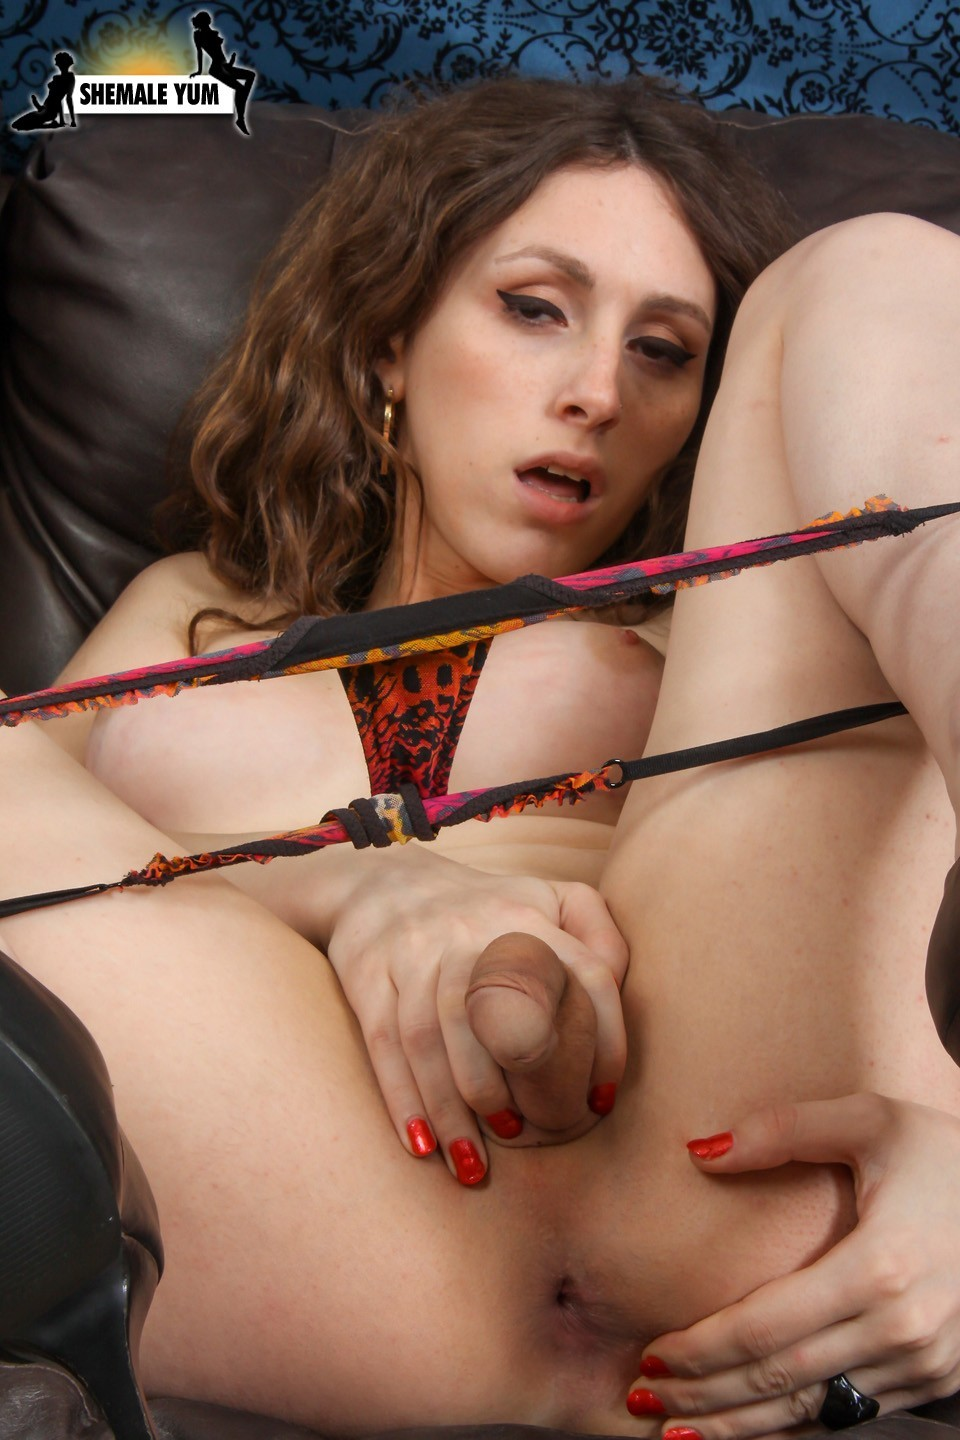 big dildos insertions toy collections images this